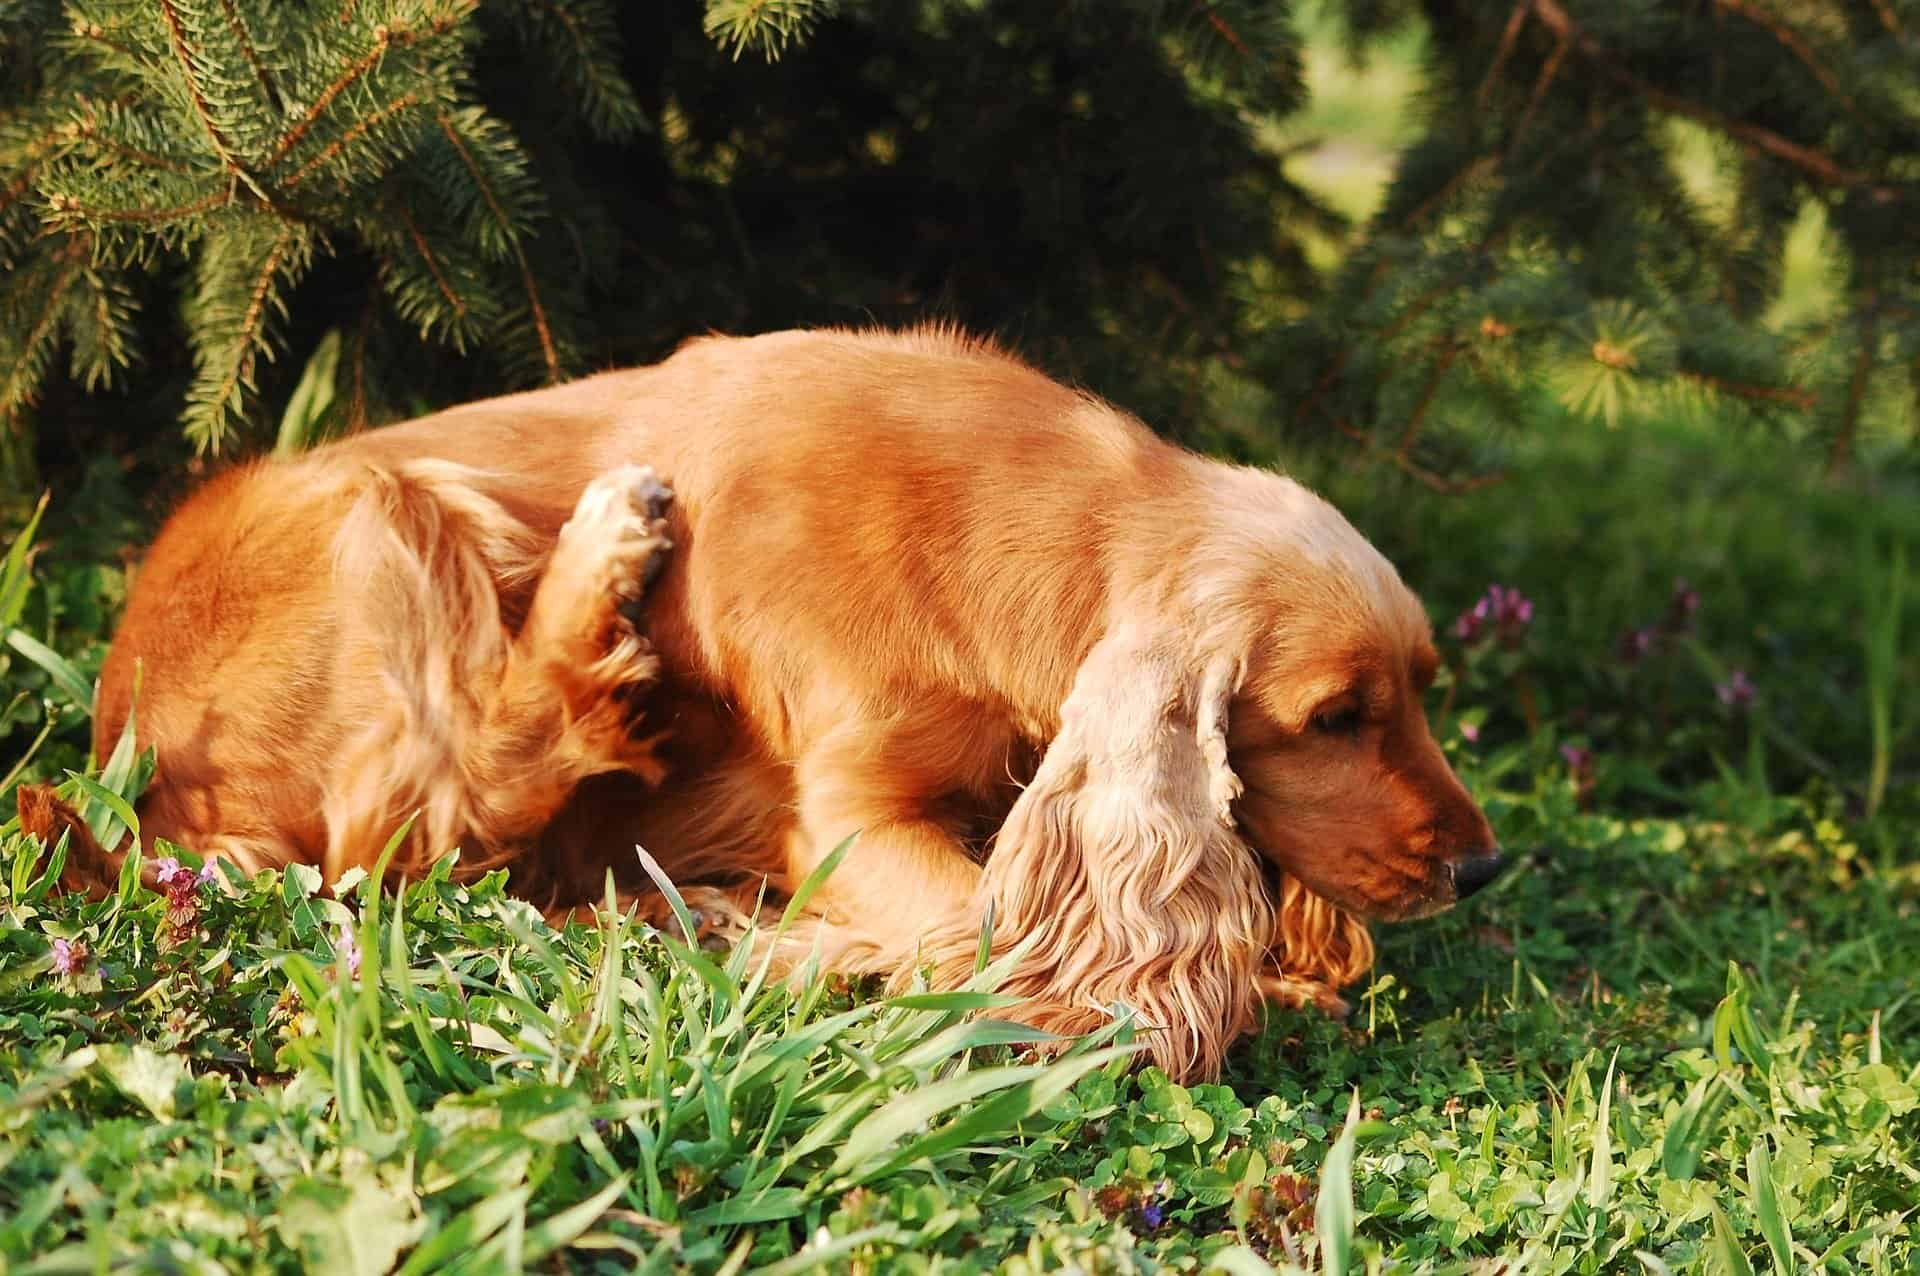 Dog scratching itself on the grass.